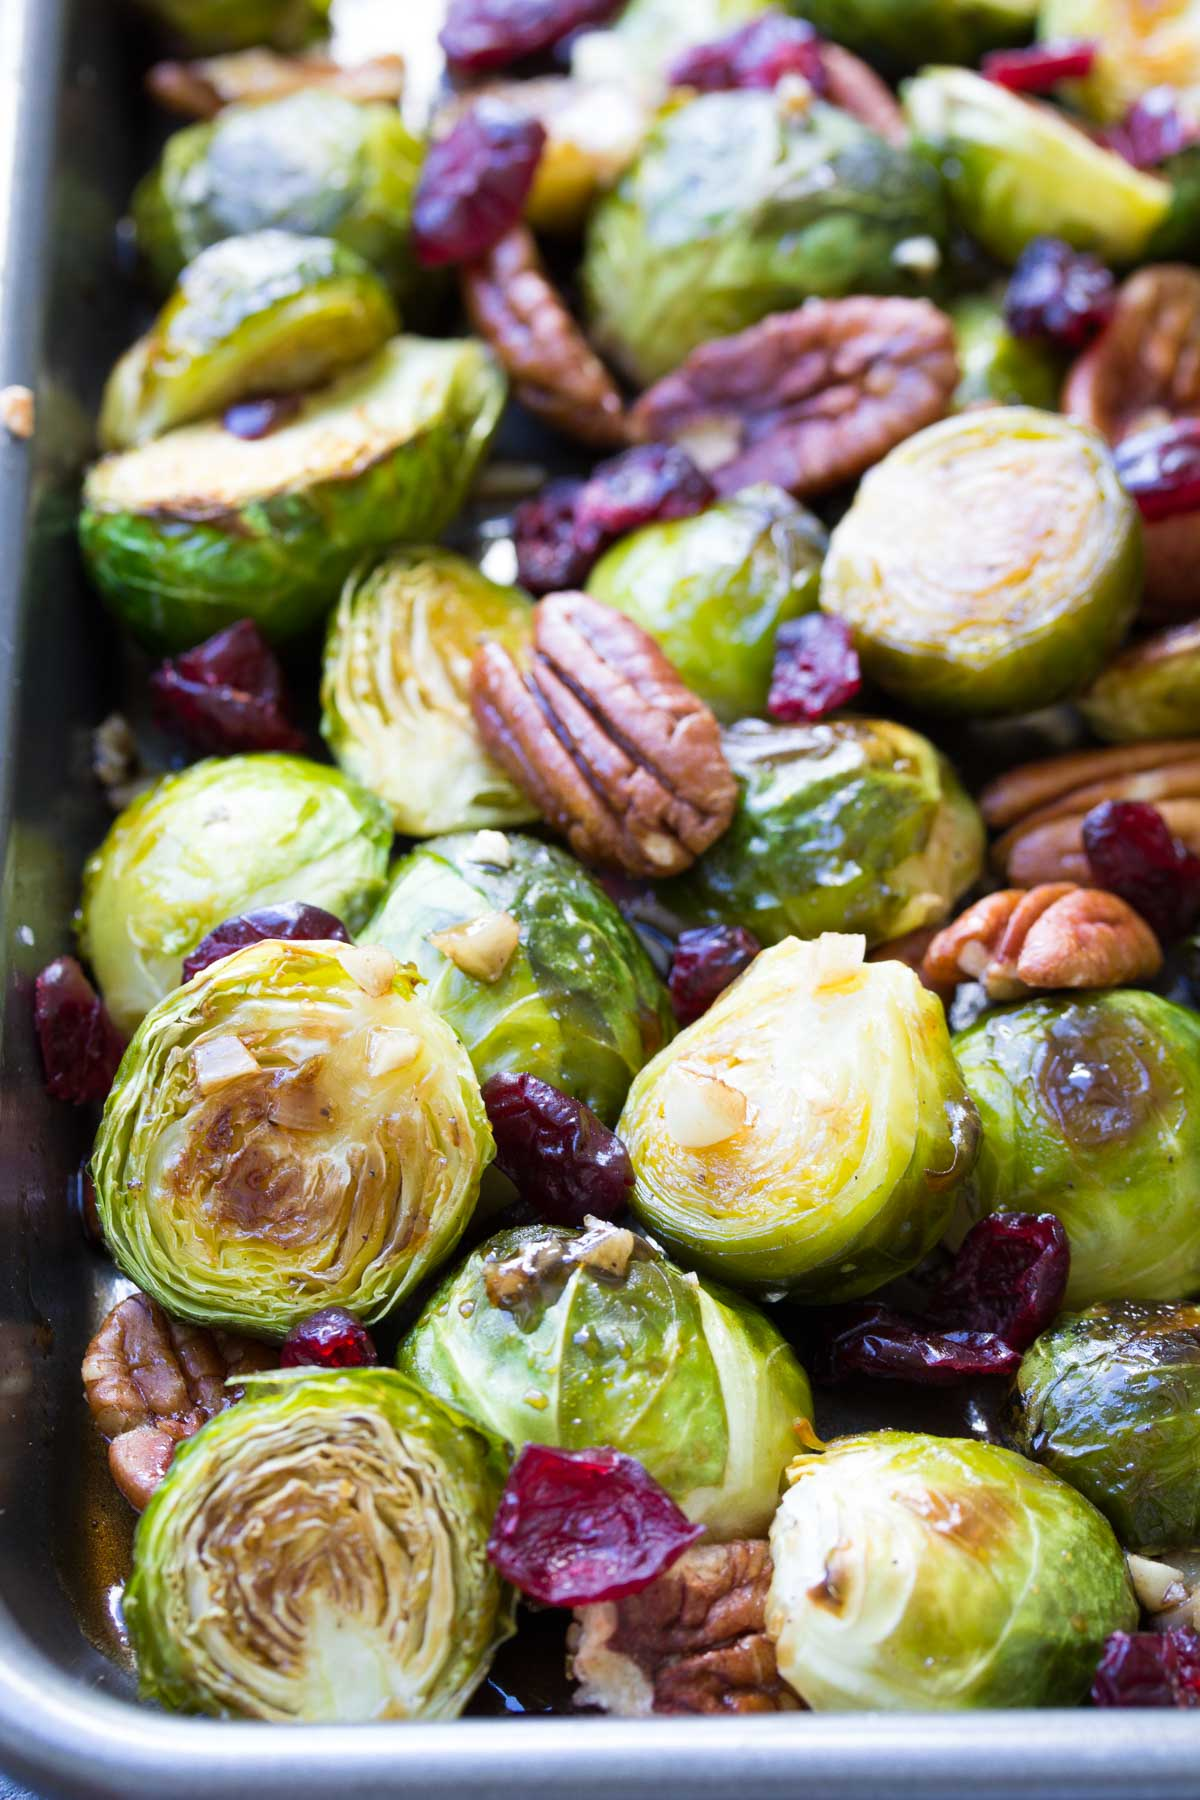 Sheet pan full of balsamic brussels sprouts.